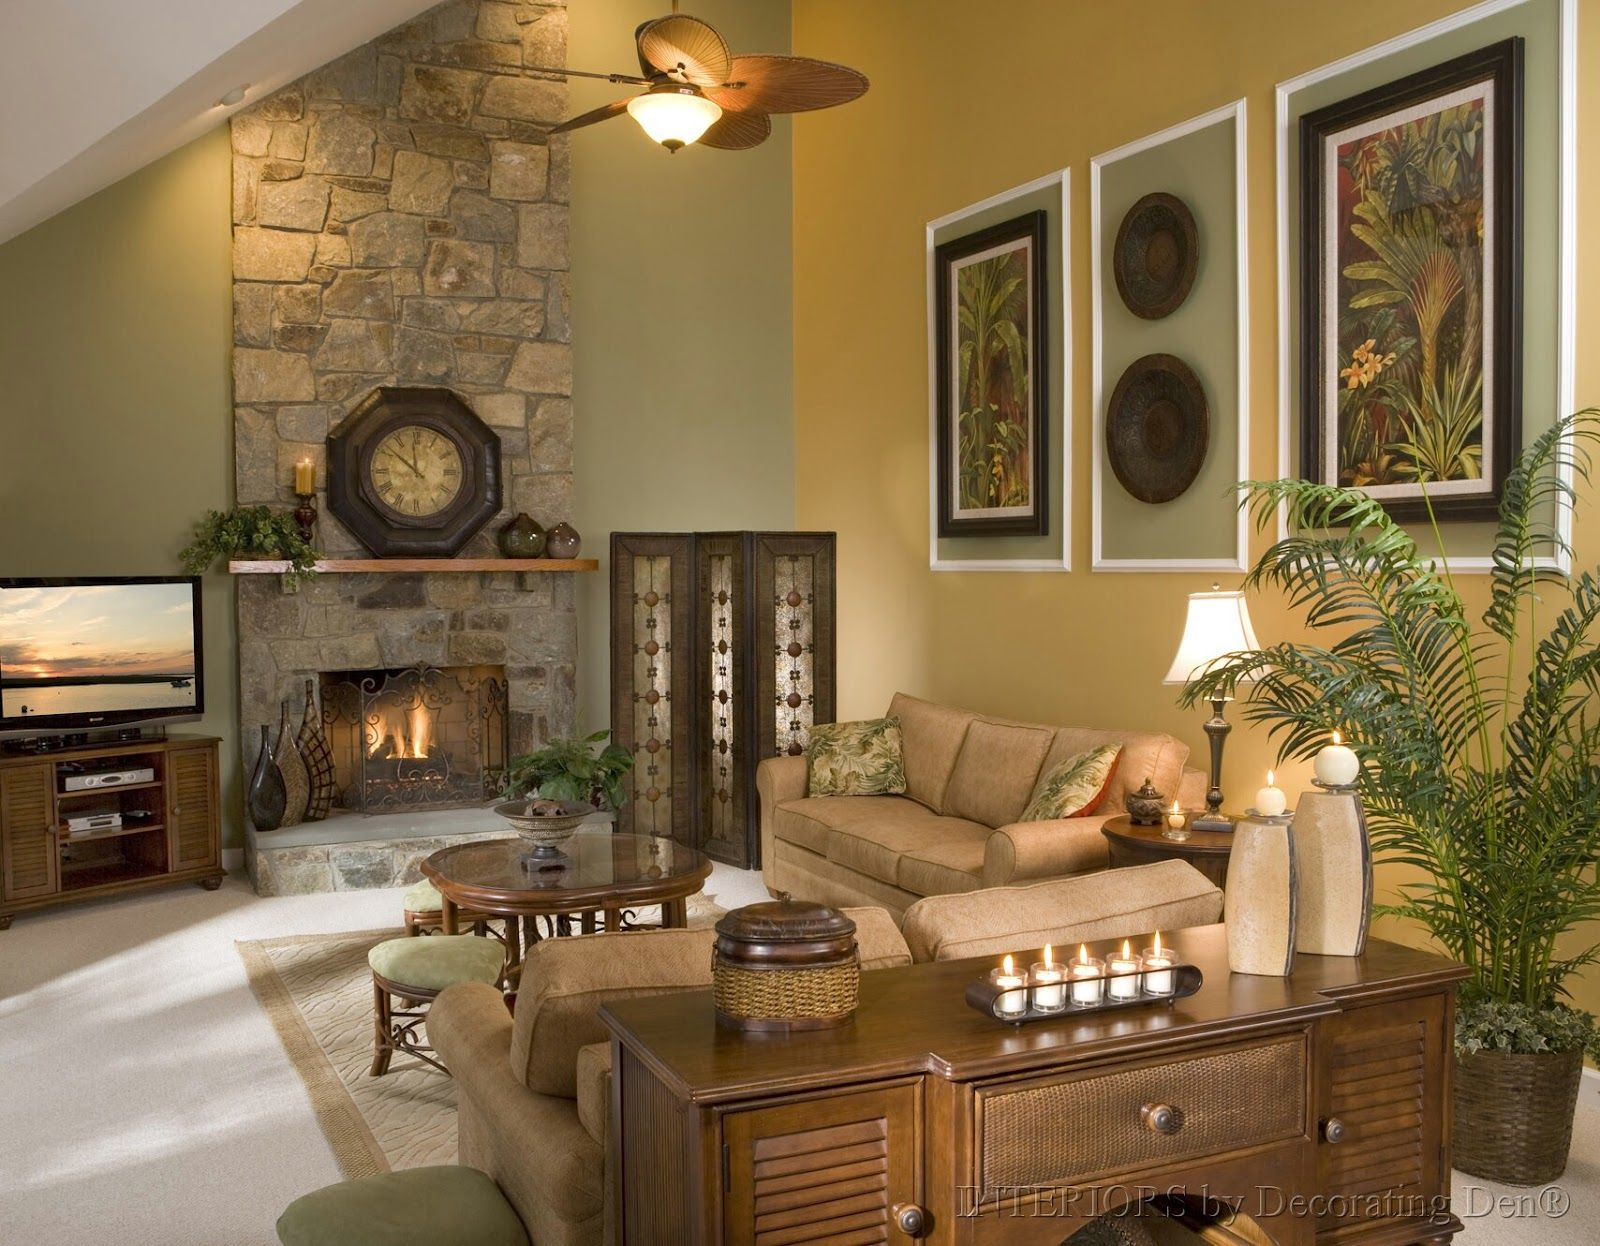 Living Room High Ceiling Living Room Designs 1000 images about living room remodel on pinterest high ceilings rooms and blue